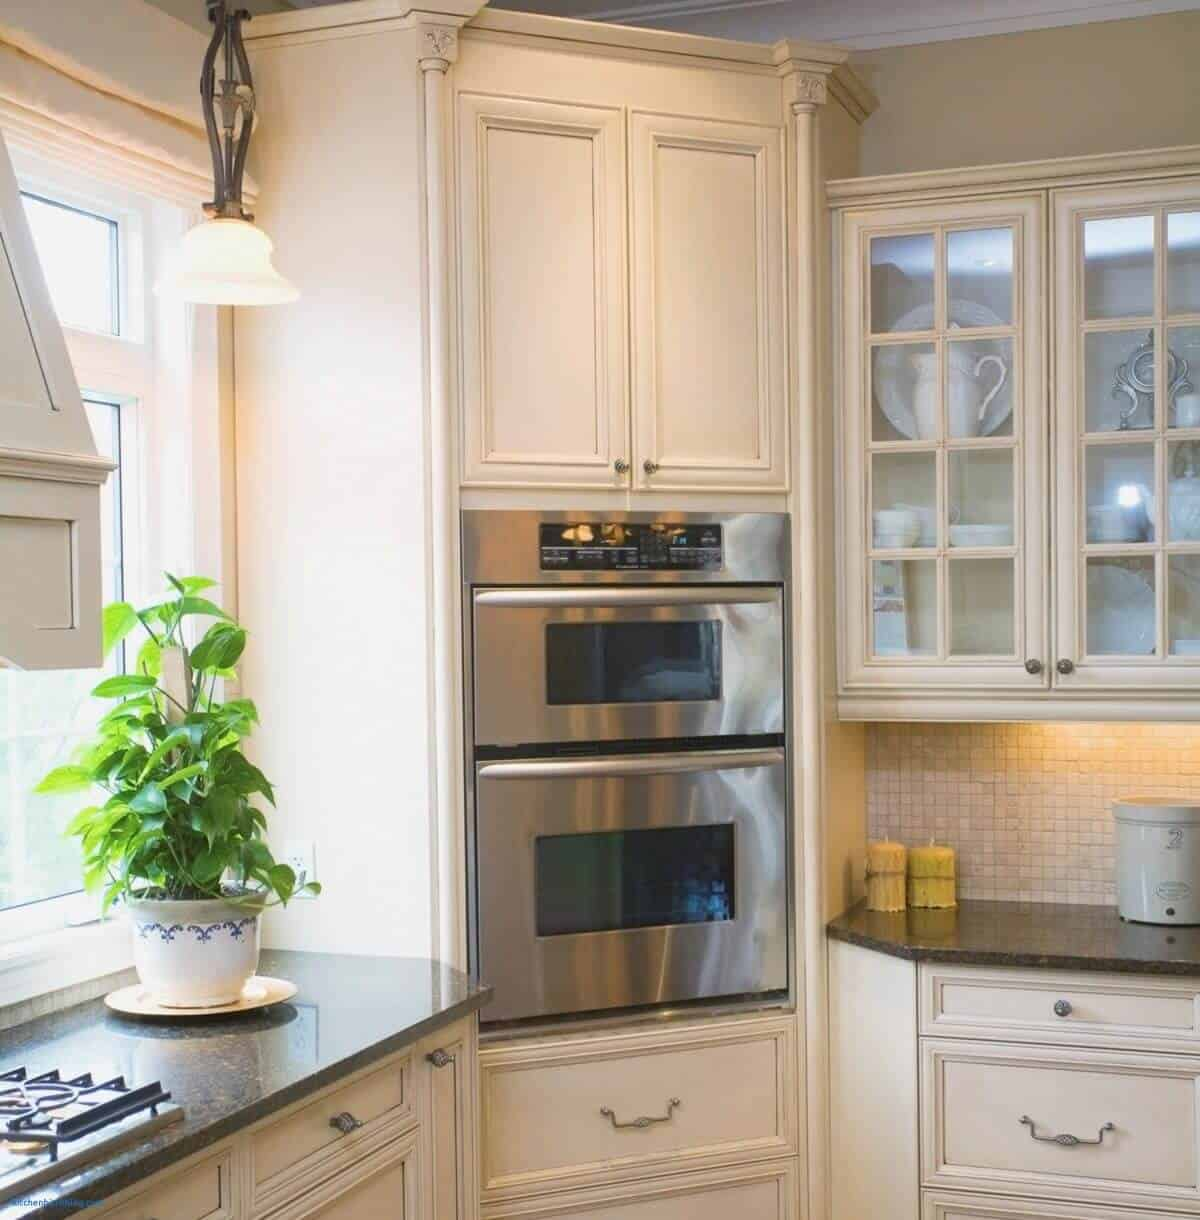 You can easily dedicate a kitchen corner to a wall oven (in this case a double wall oven).